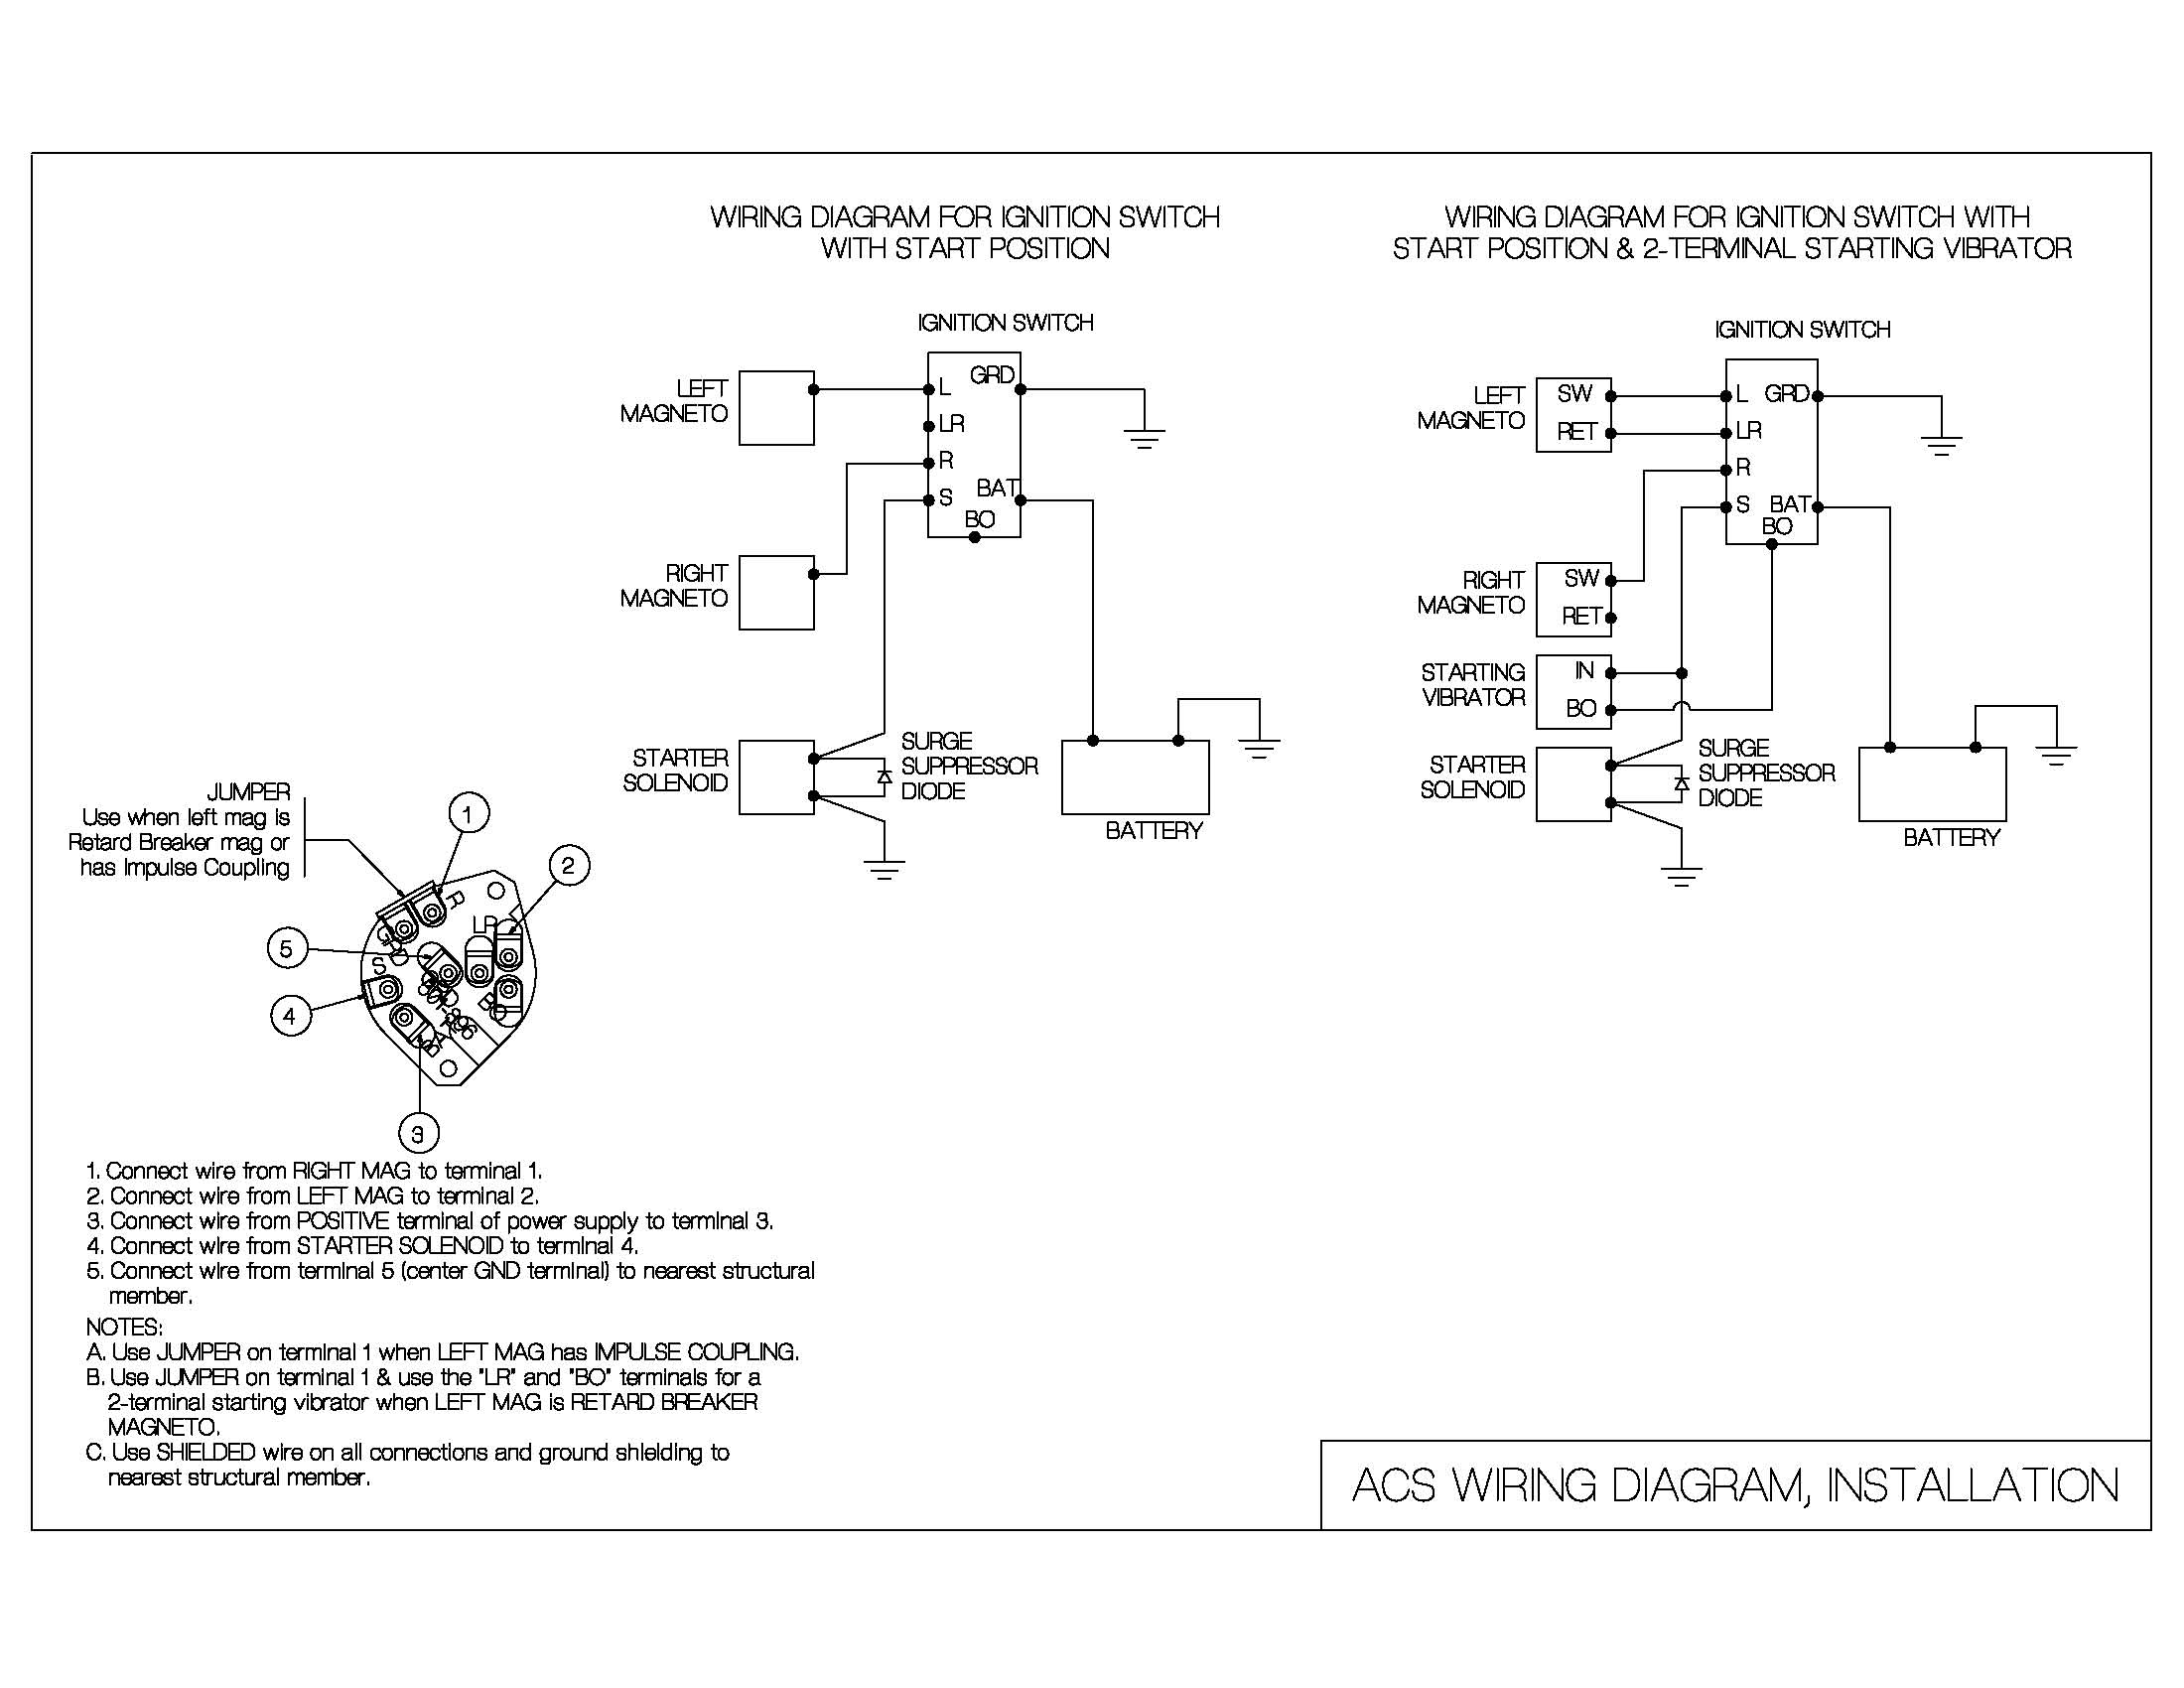 Wiring Diagram ignition switch wiring diagram acs products company  at reclaimingppi.co